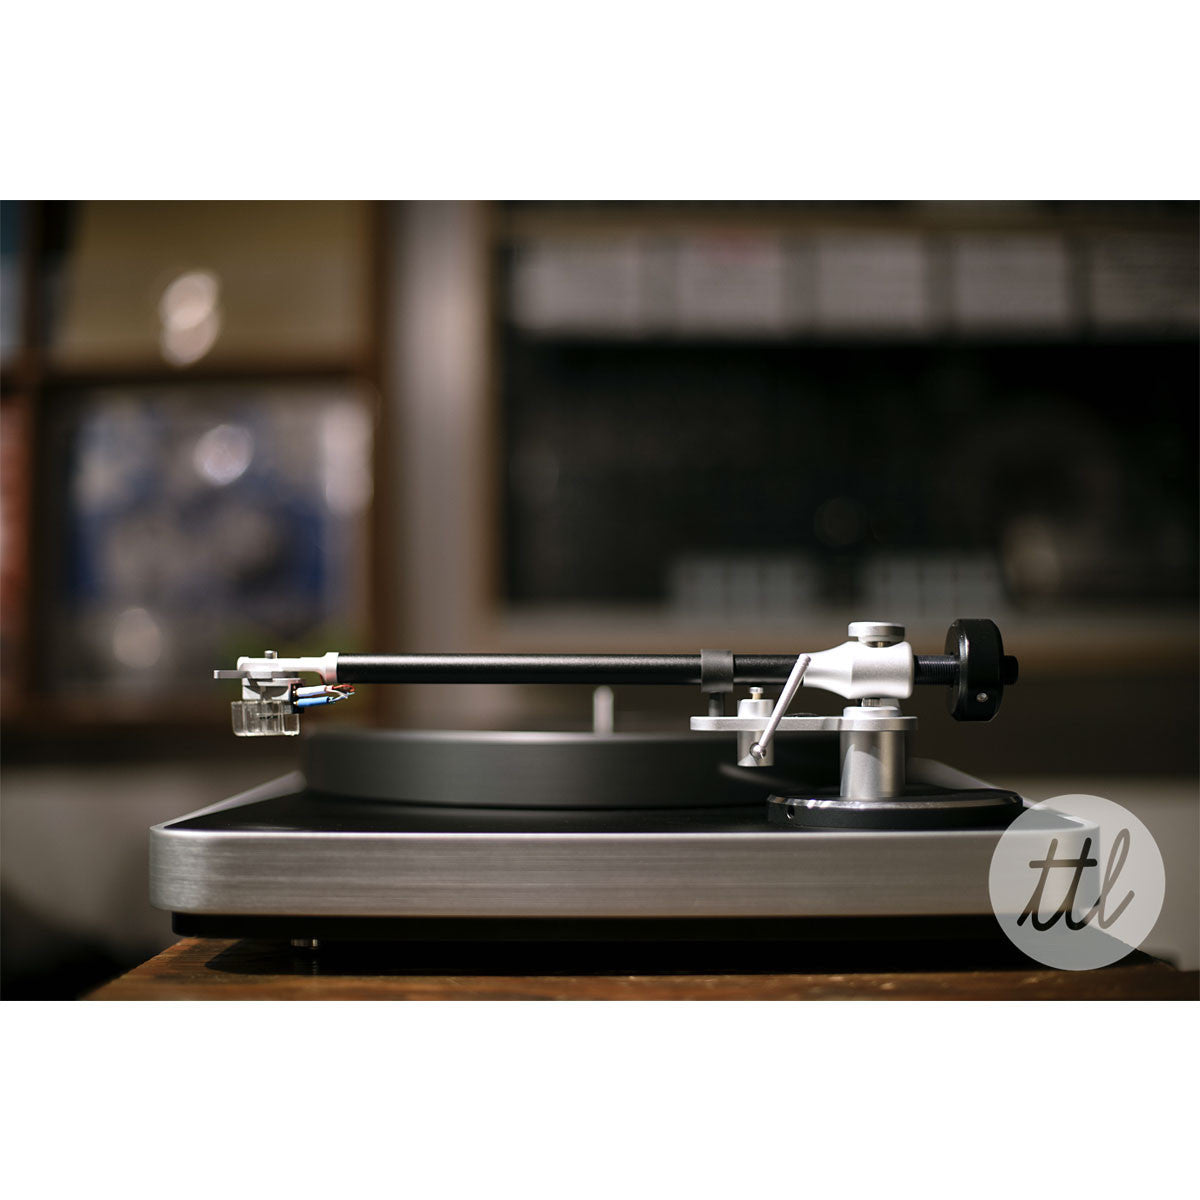 Clearaudio: Concept Turntable - Verify Tonearm / Concept MM Cartridge lifestyle 2